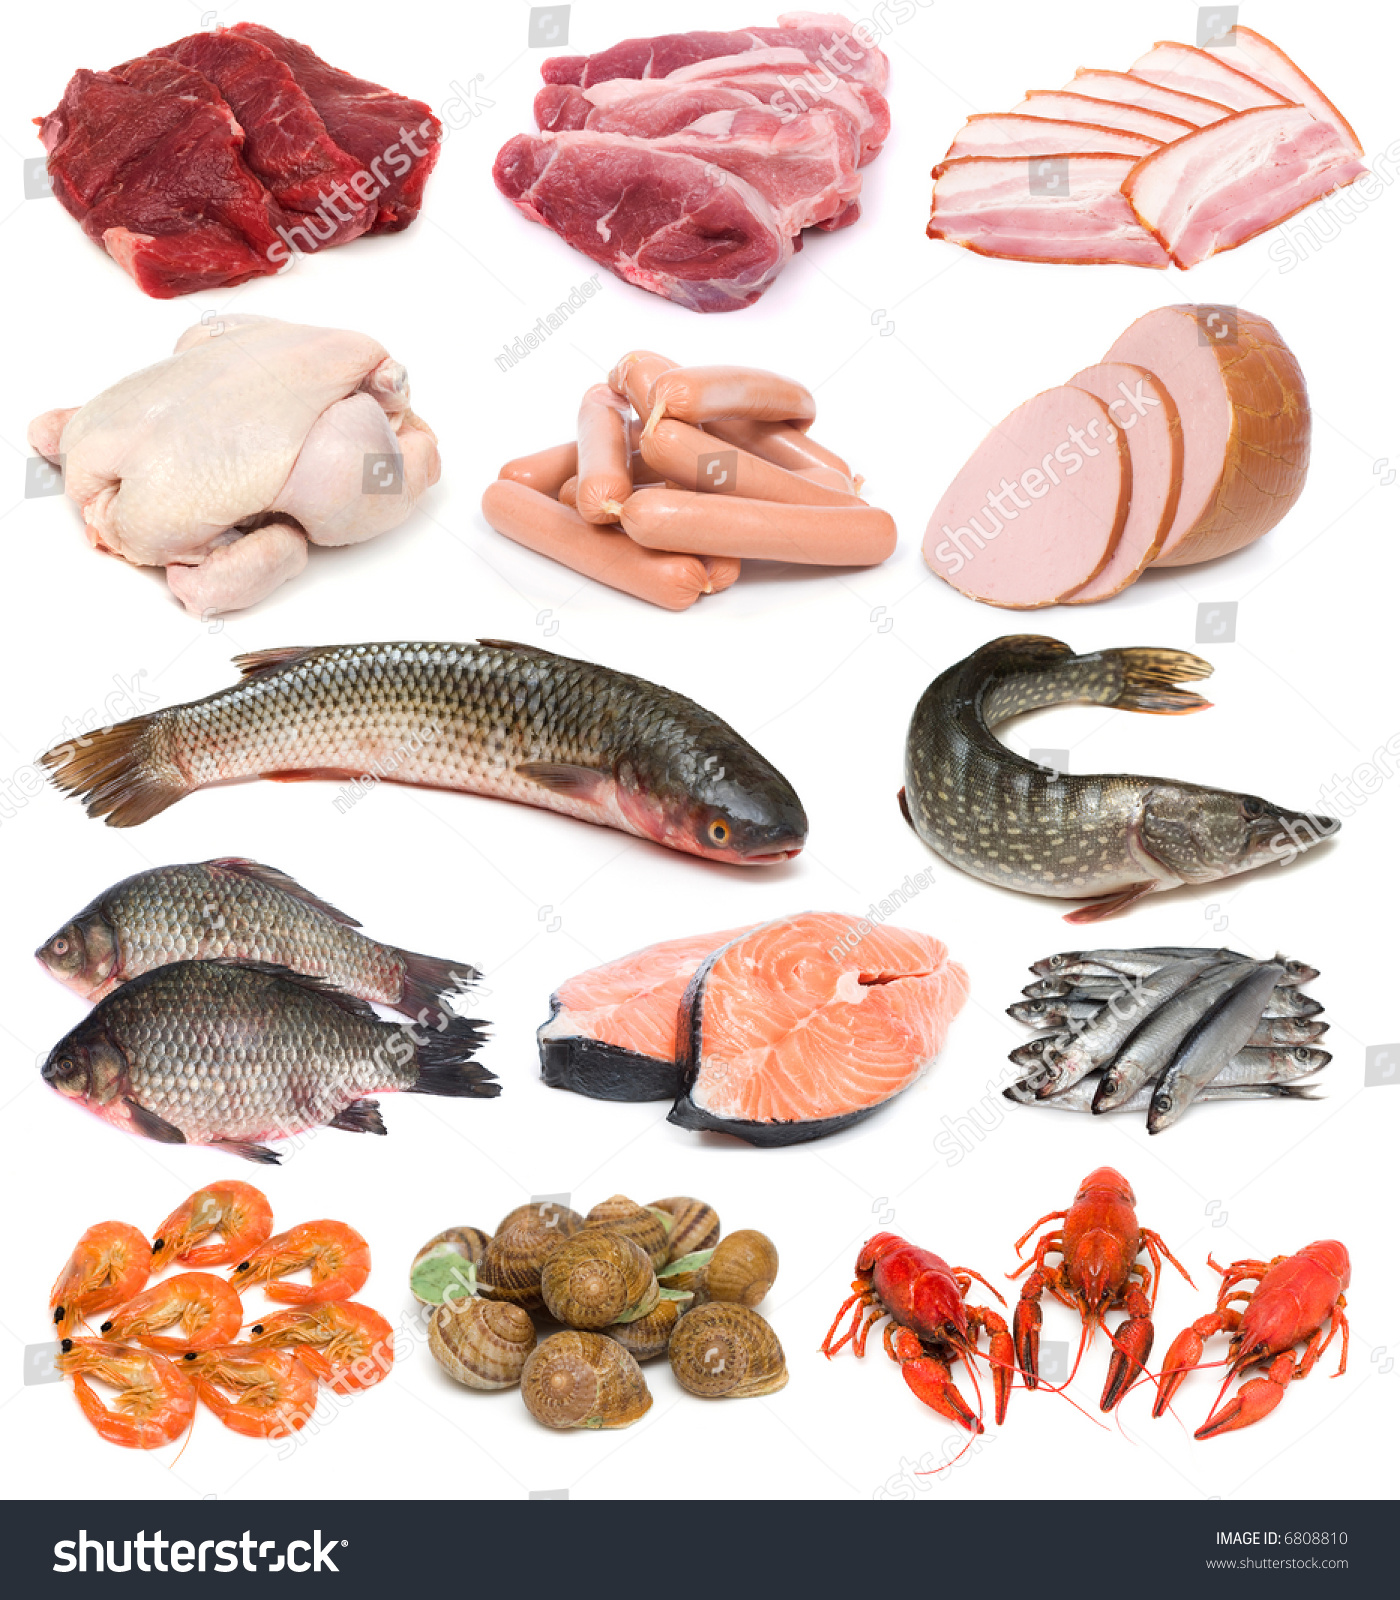 Image set fresh meat fish seafood stock photo 6808810 for Fish and seafood